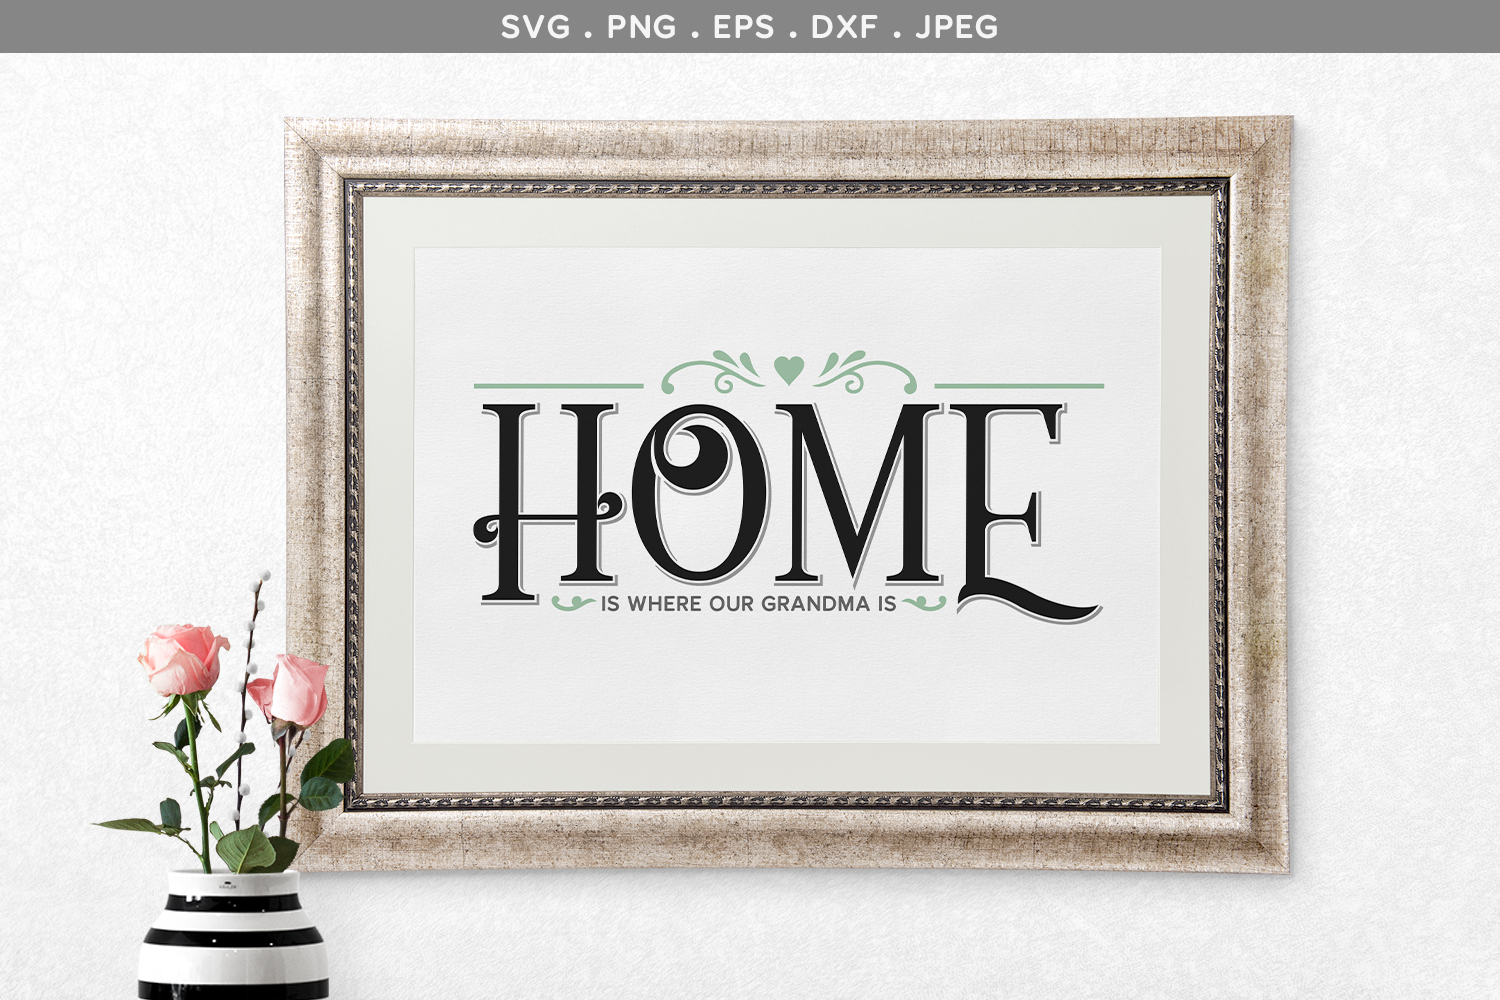 Home is Where Our Grandma is - svg & printable example image 1